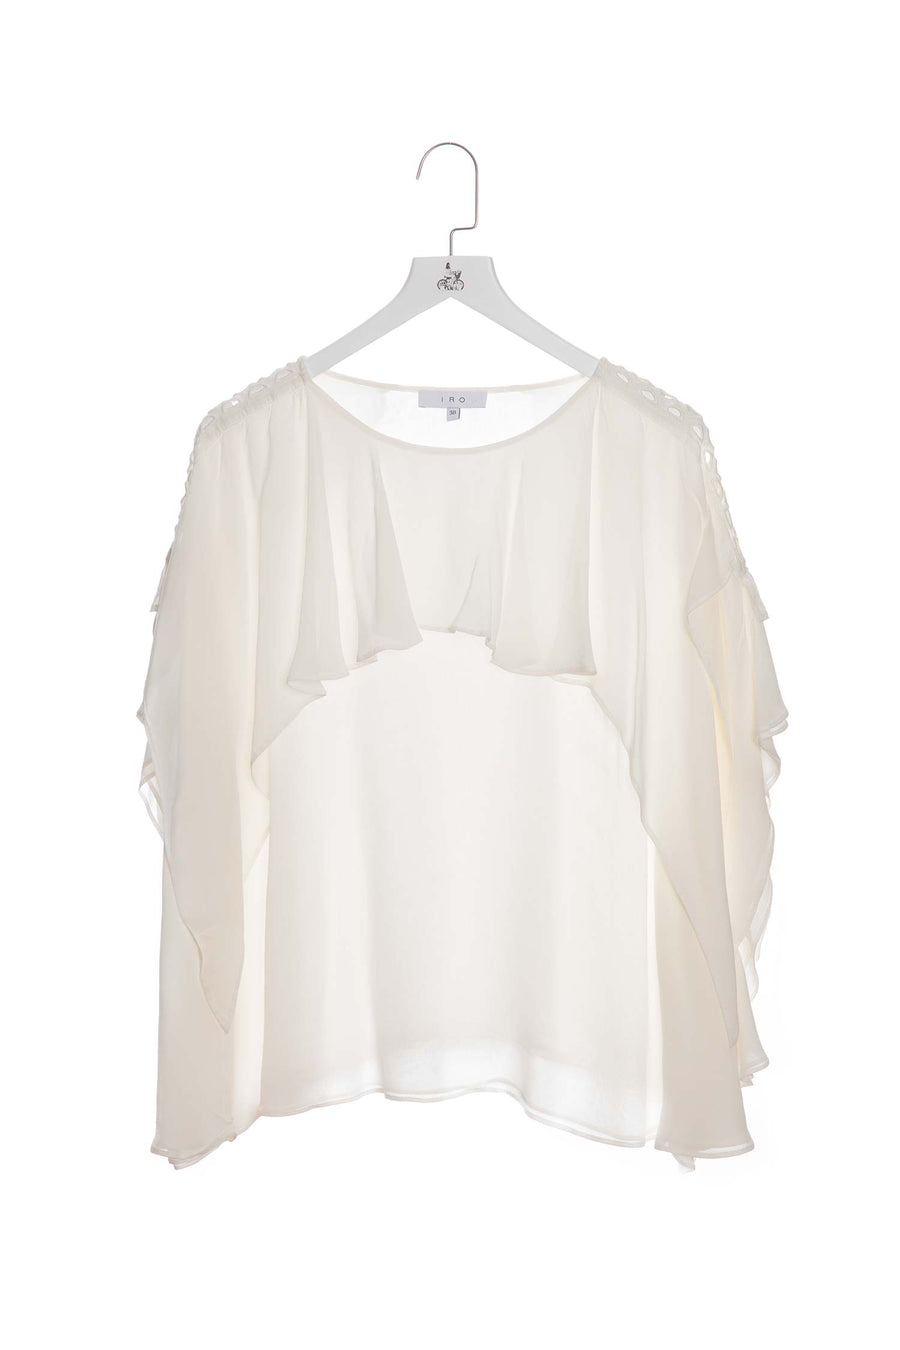 Mid-sleeve Ruffled Top White